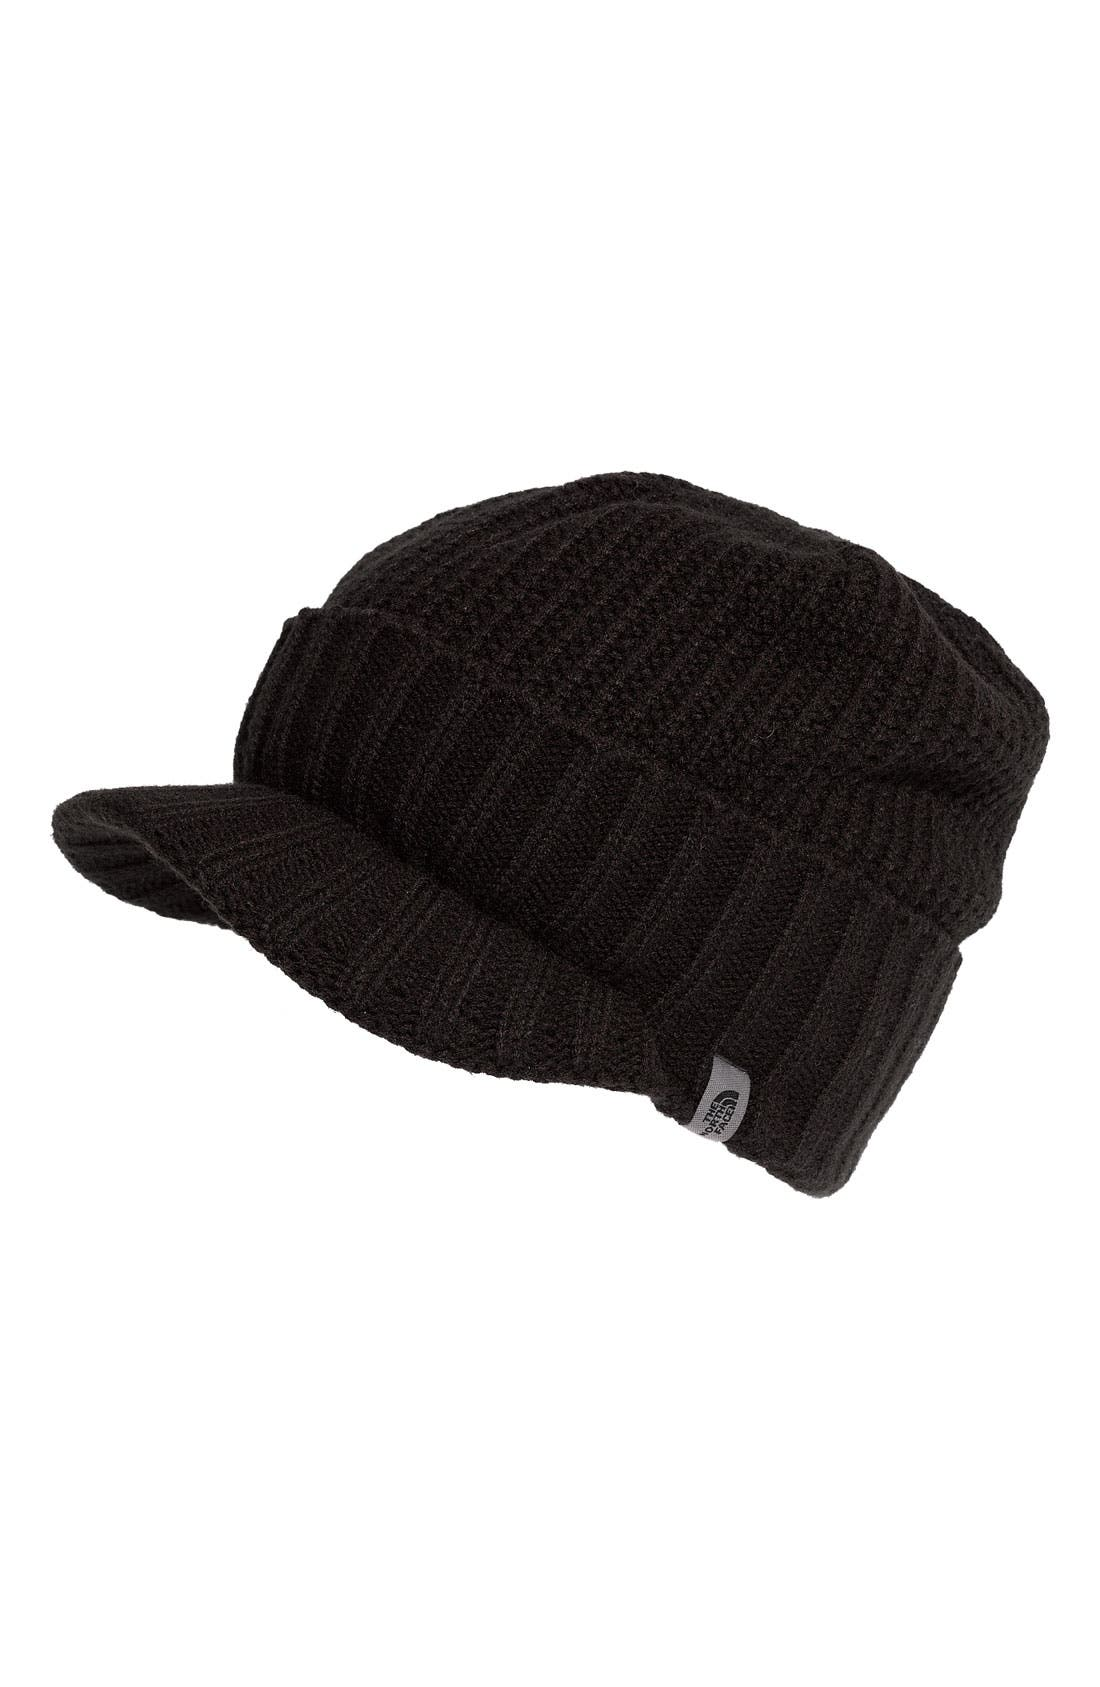 Main Image - The North Face 'GTO' Rib Knit Visor Beanie (Men)